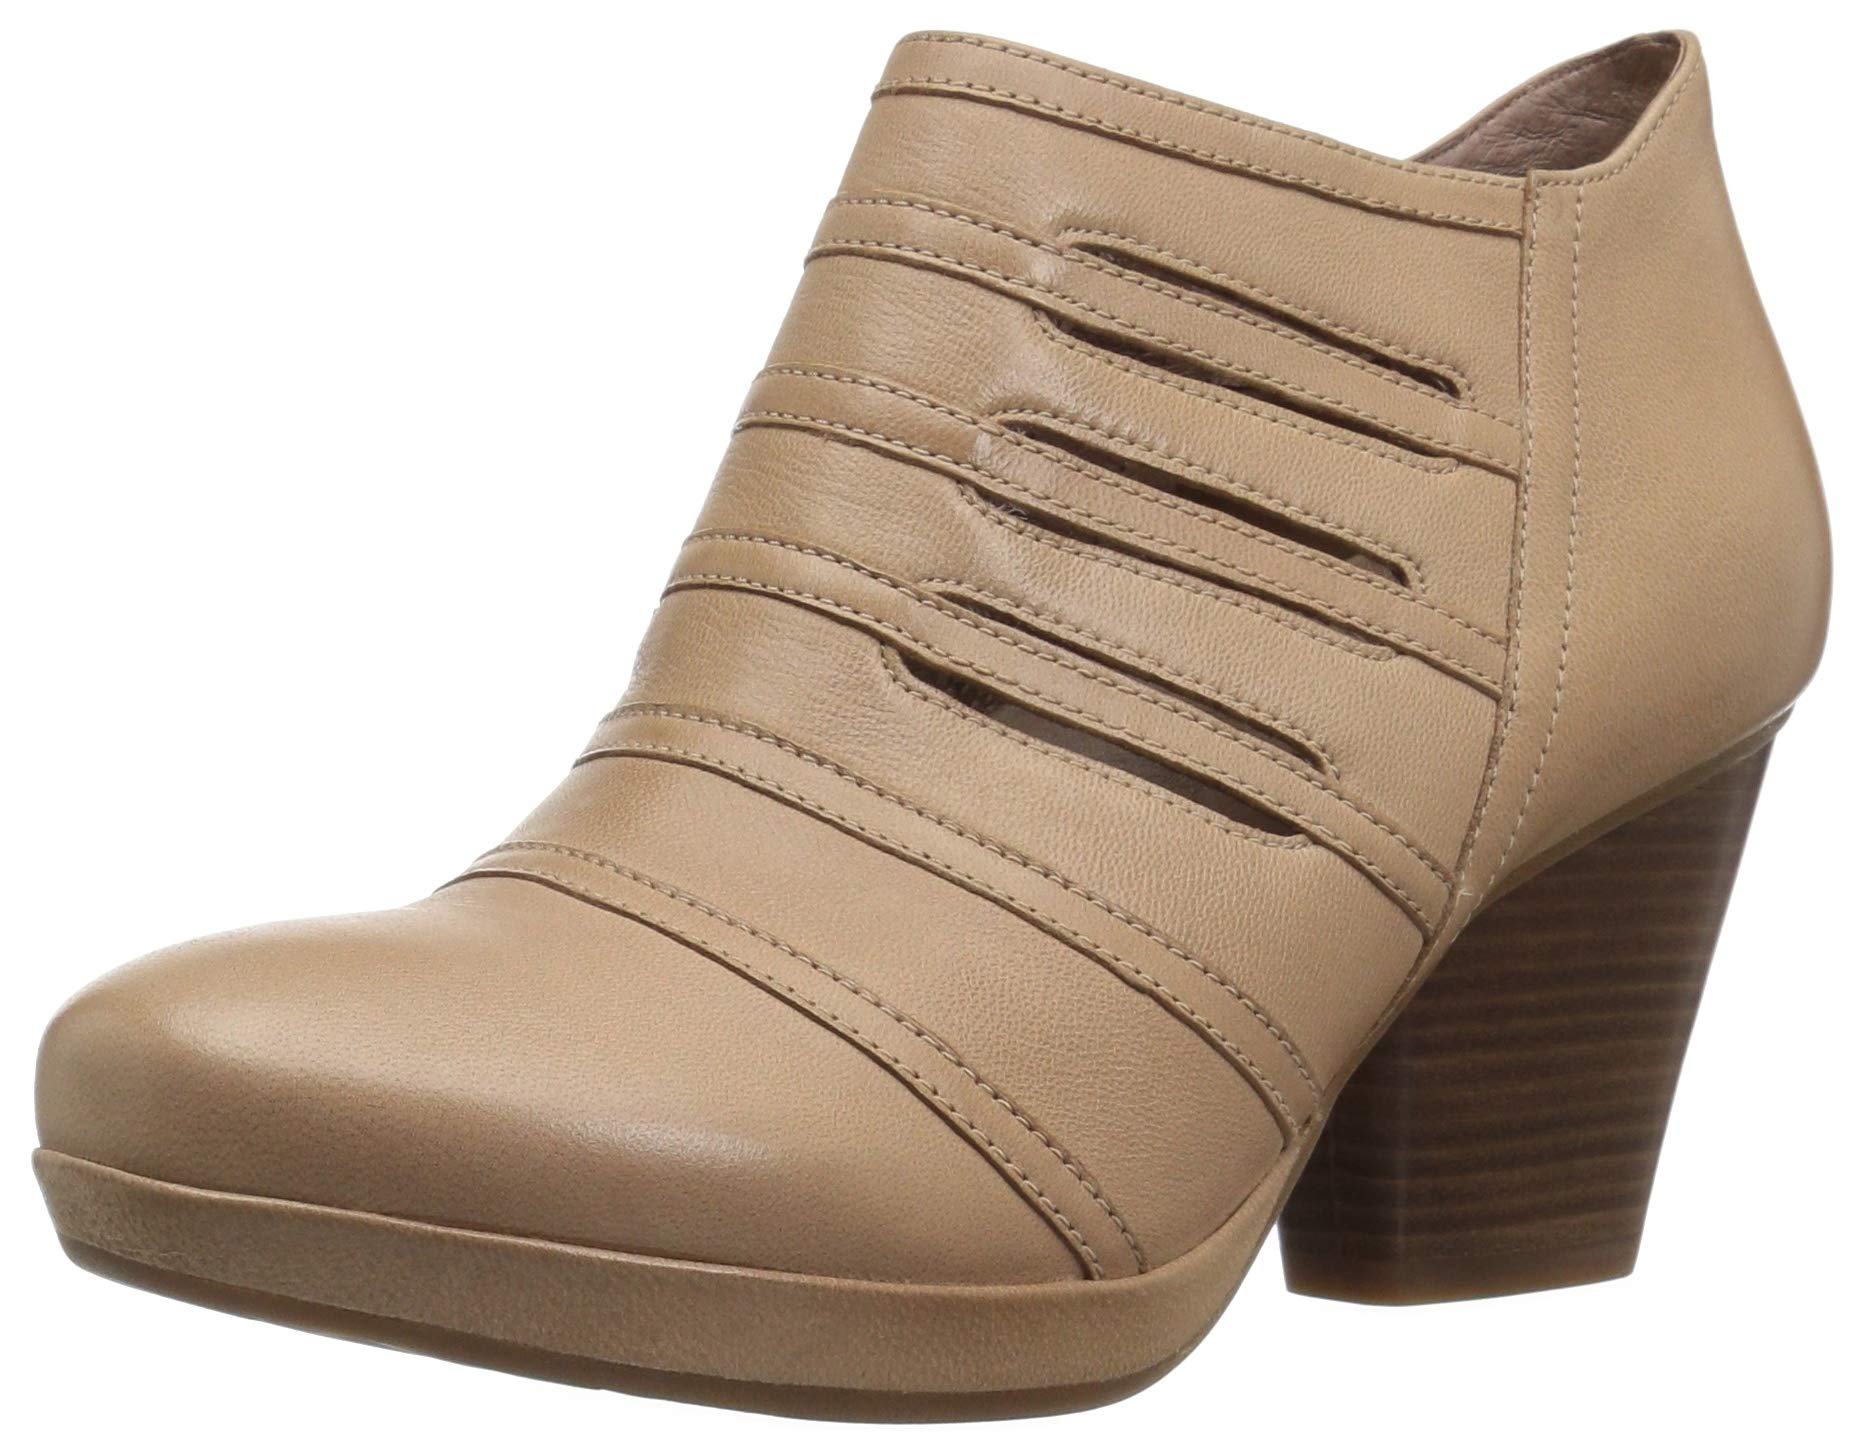 Dansko Women's Meadow Ankle Boot, Sand Nubuck, 41 M EU (10.5-11 US)